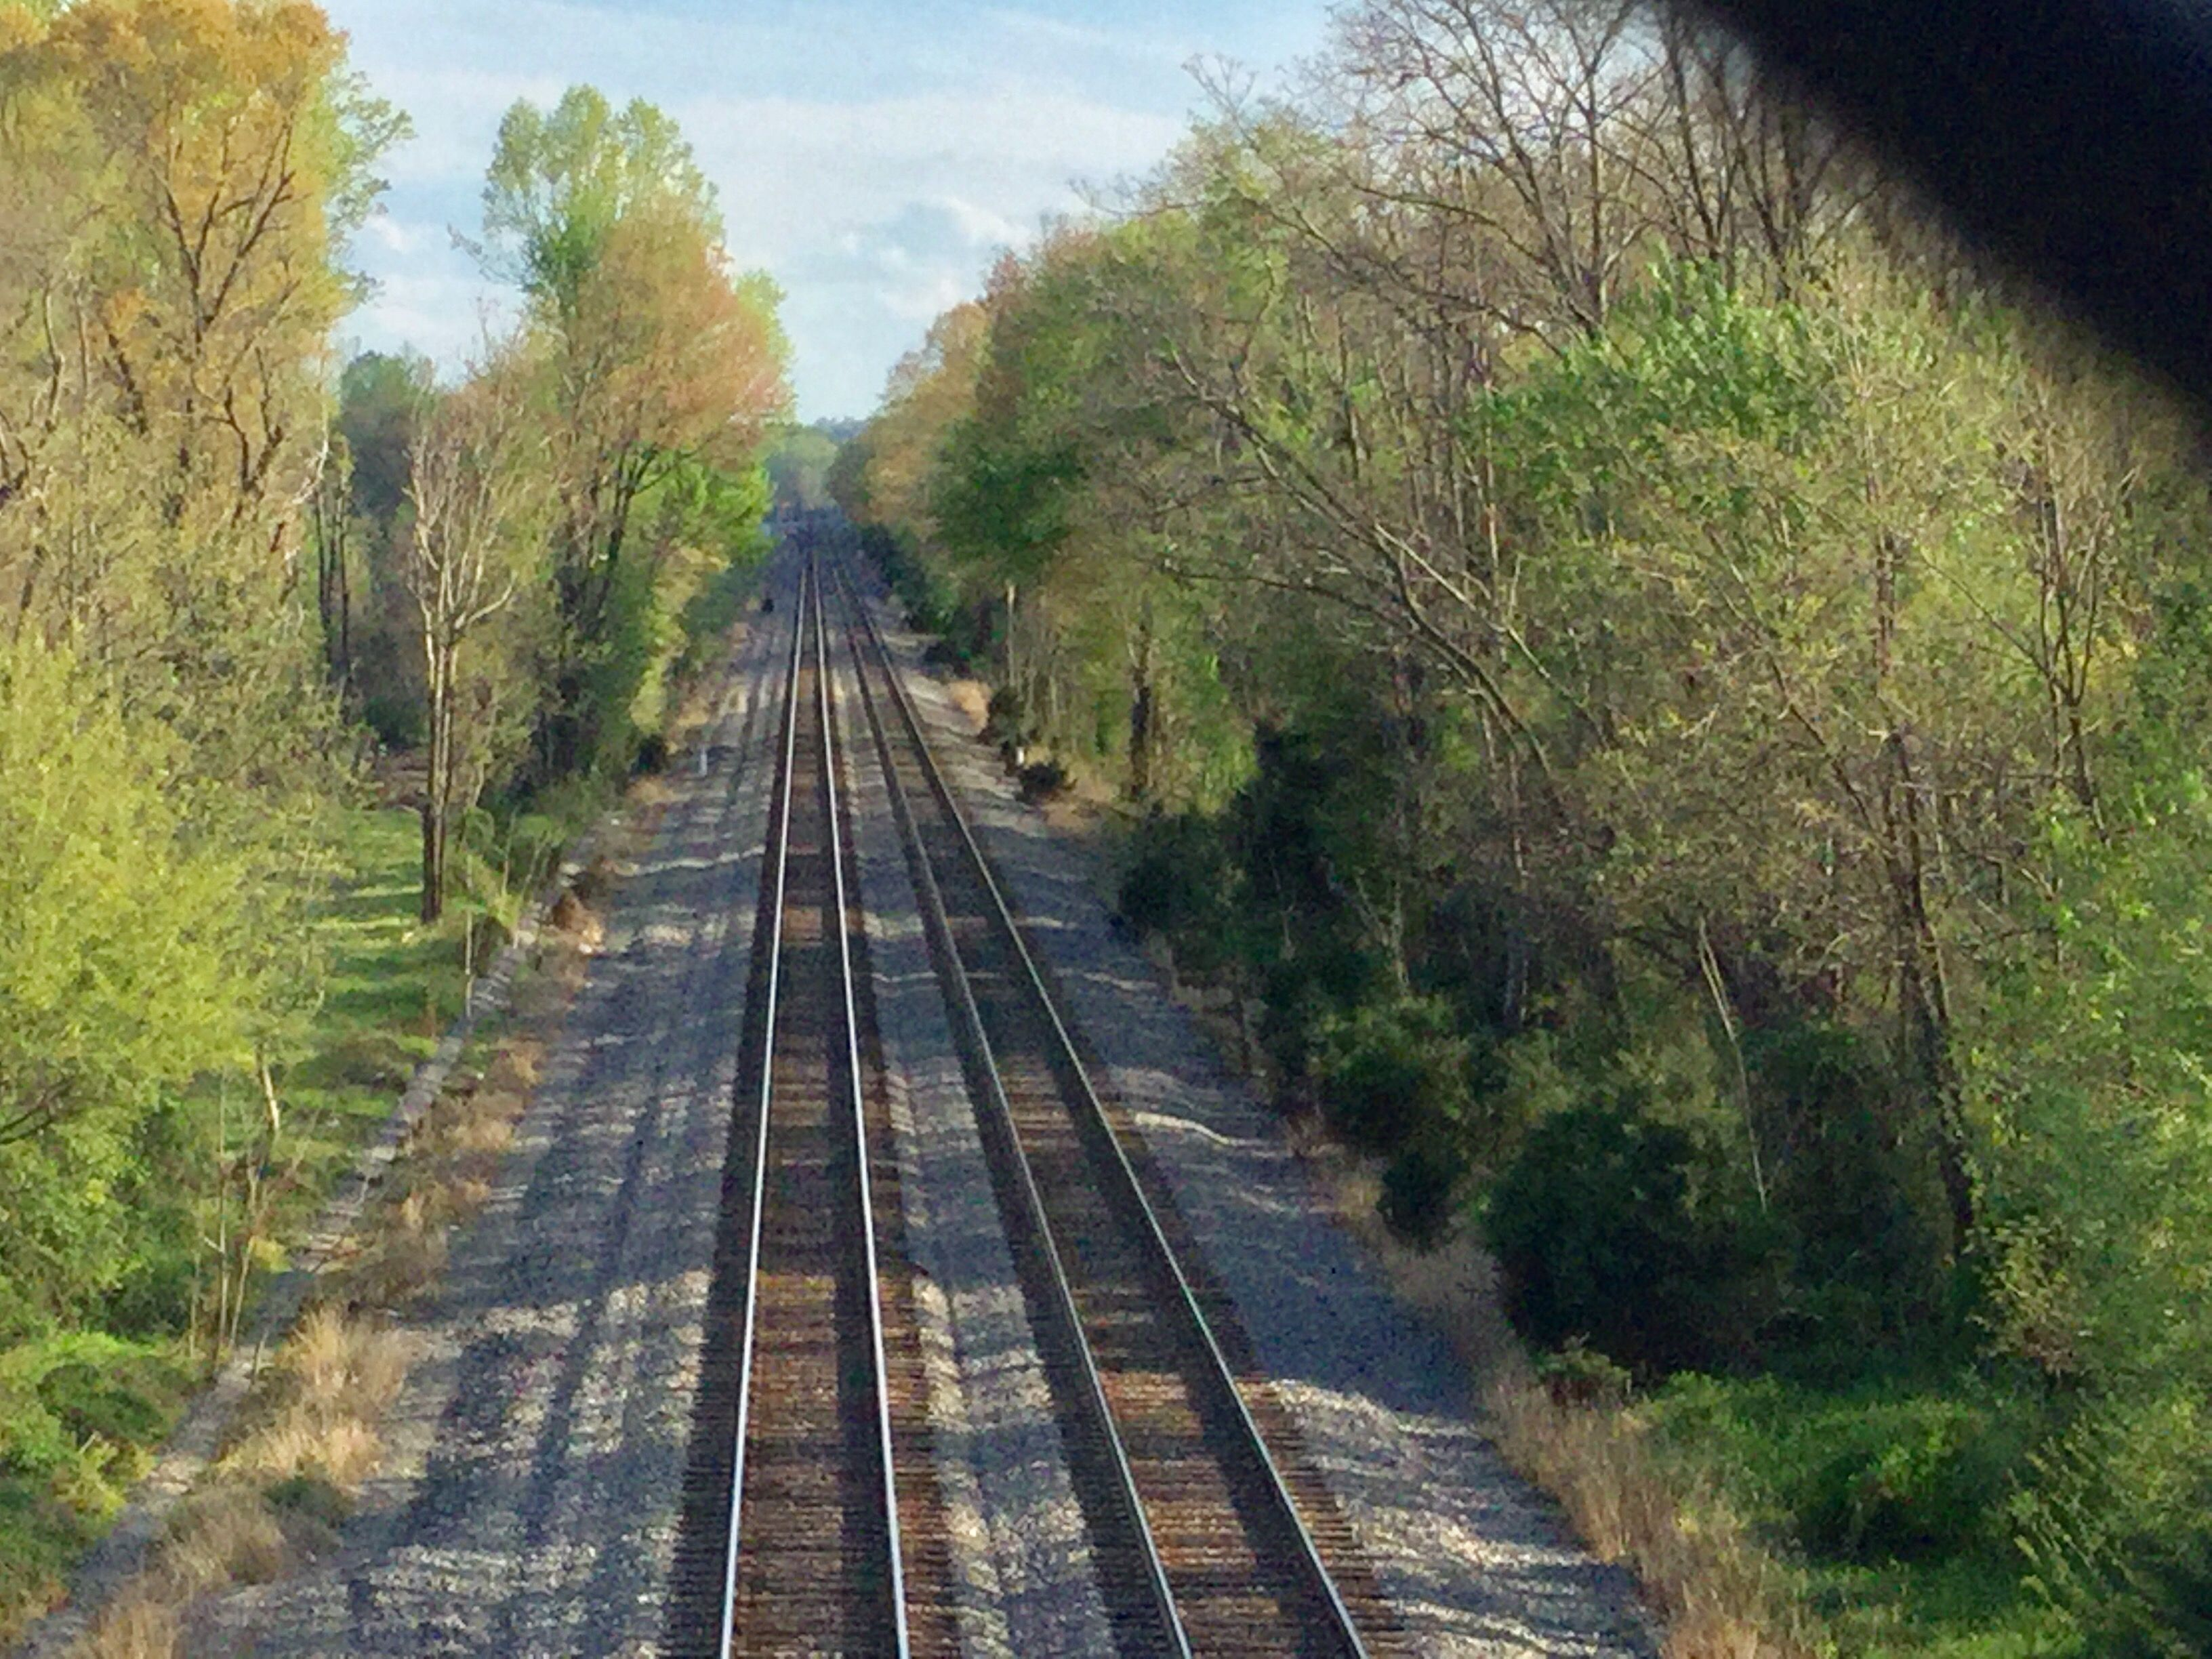 Looking southbound from the walkover at Veterans Park in Woodbridge, Va. photo by Kathy Fite Simon 4/12/17